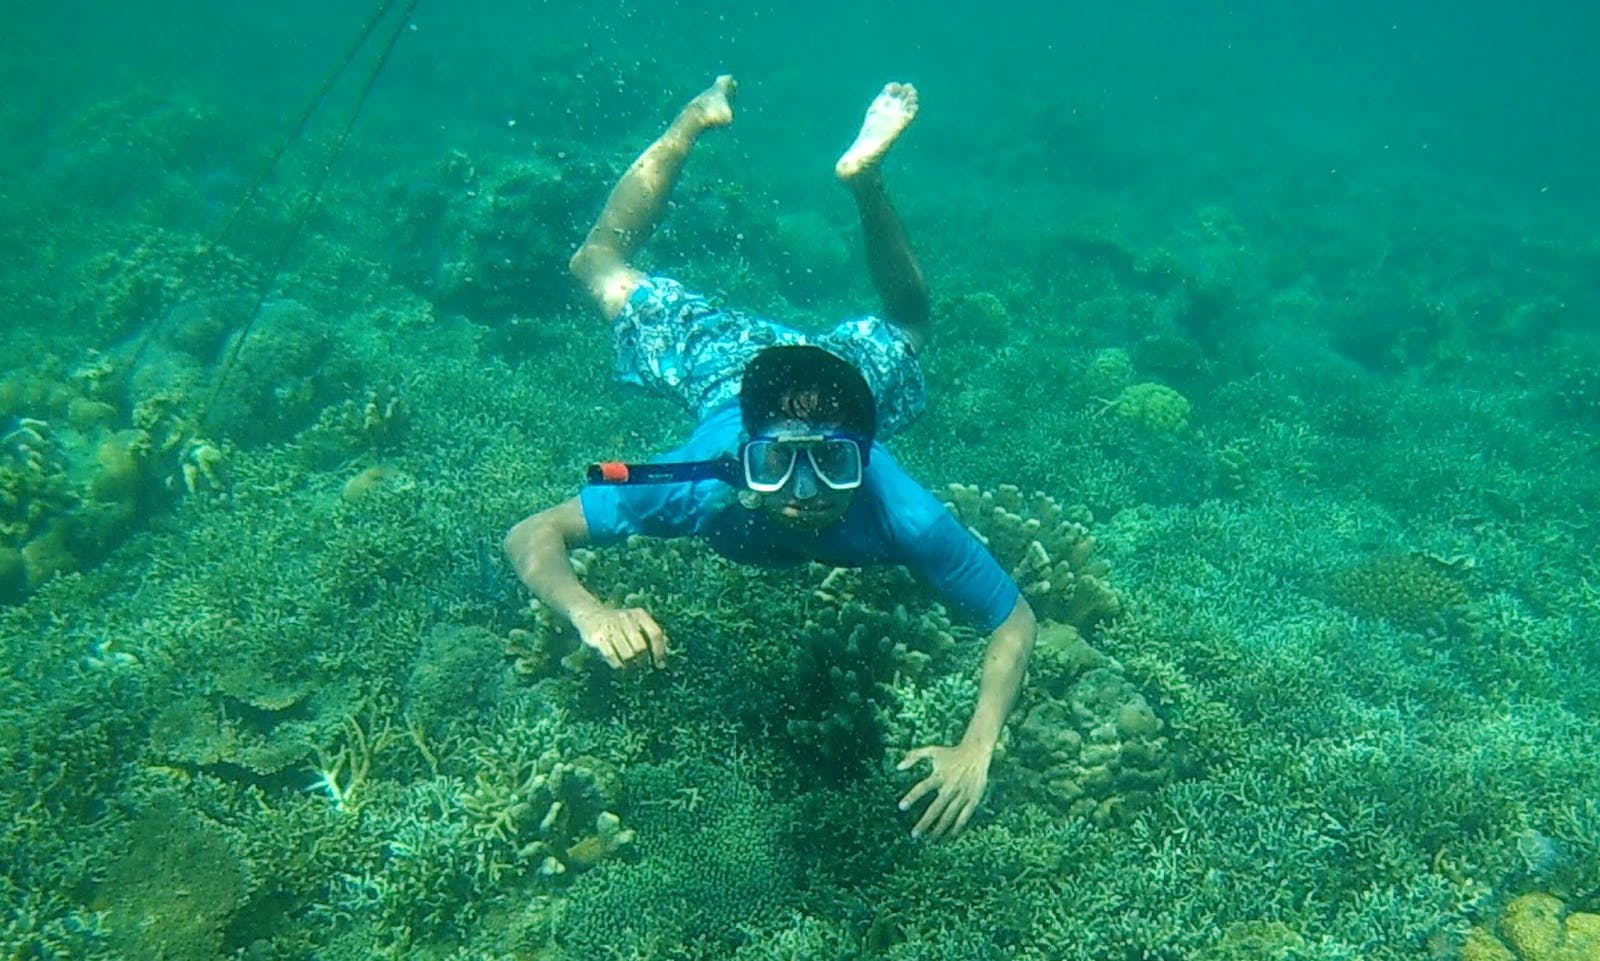 Wonderful opportunity to observe the underwater life in Buleleng, Bali